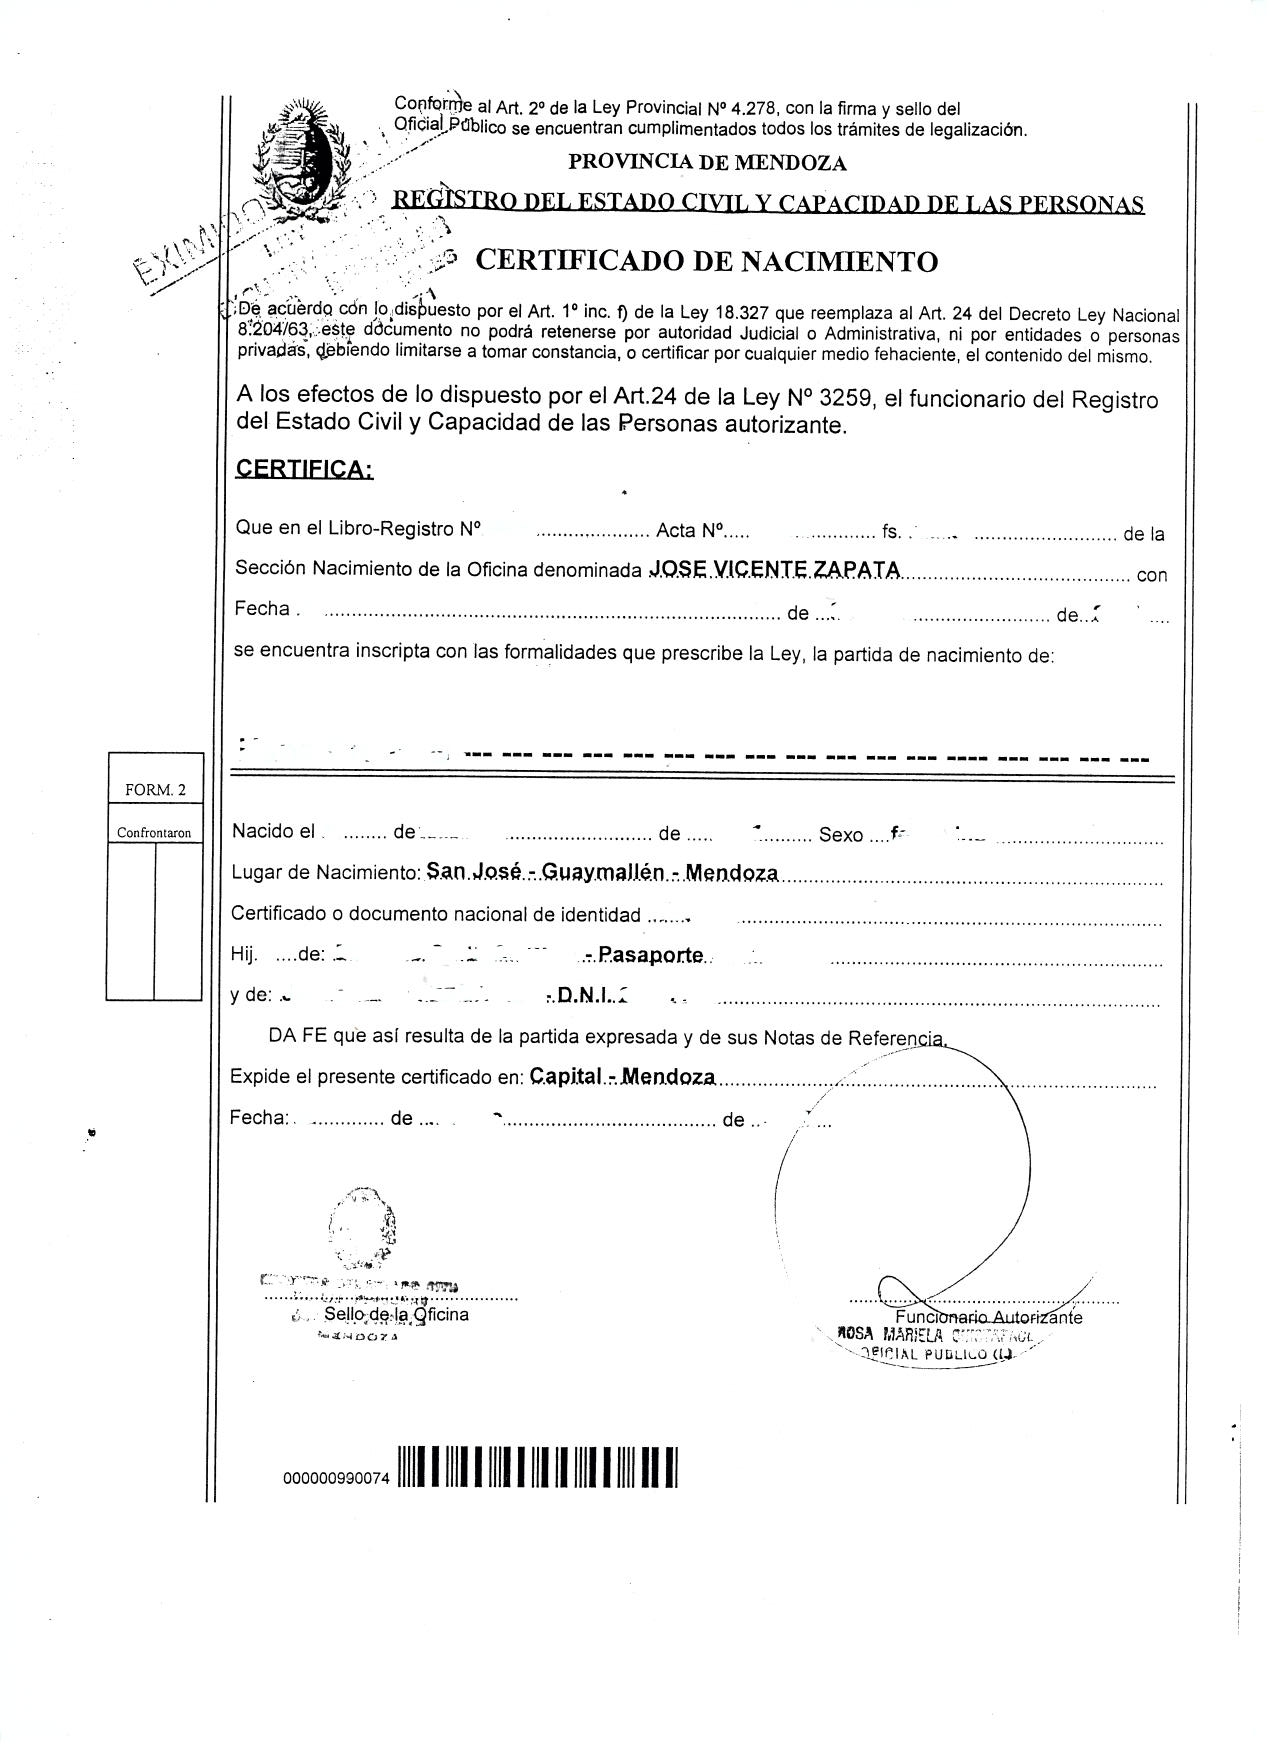 birth certificate translation examples spanish english